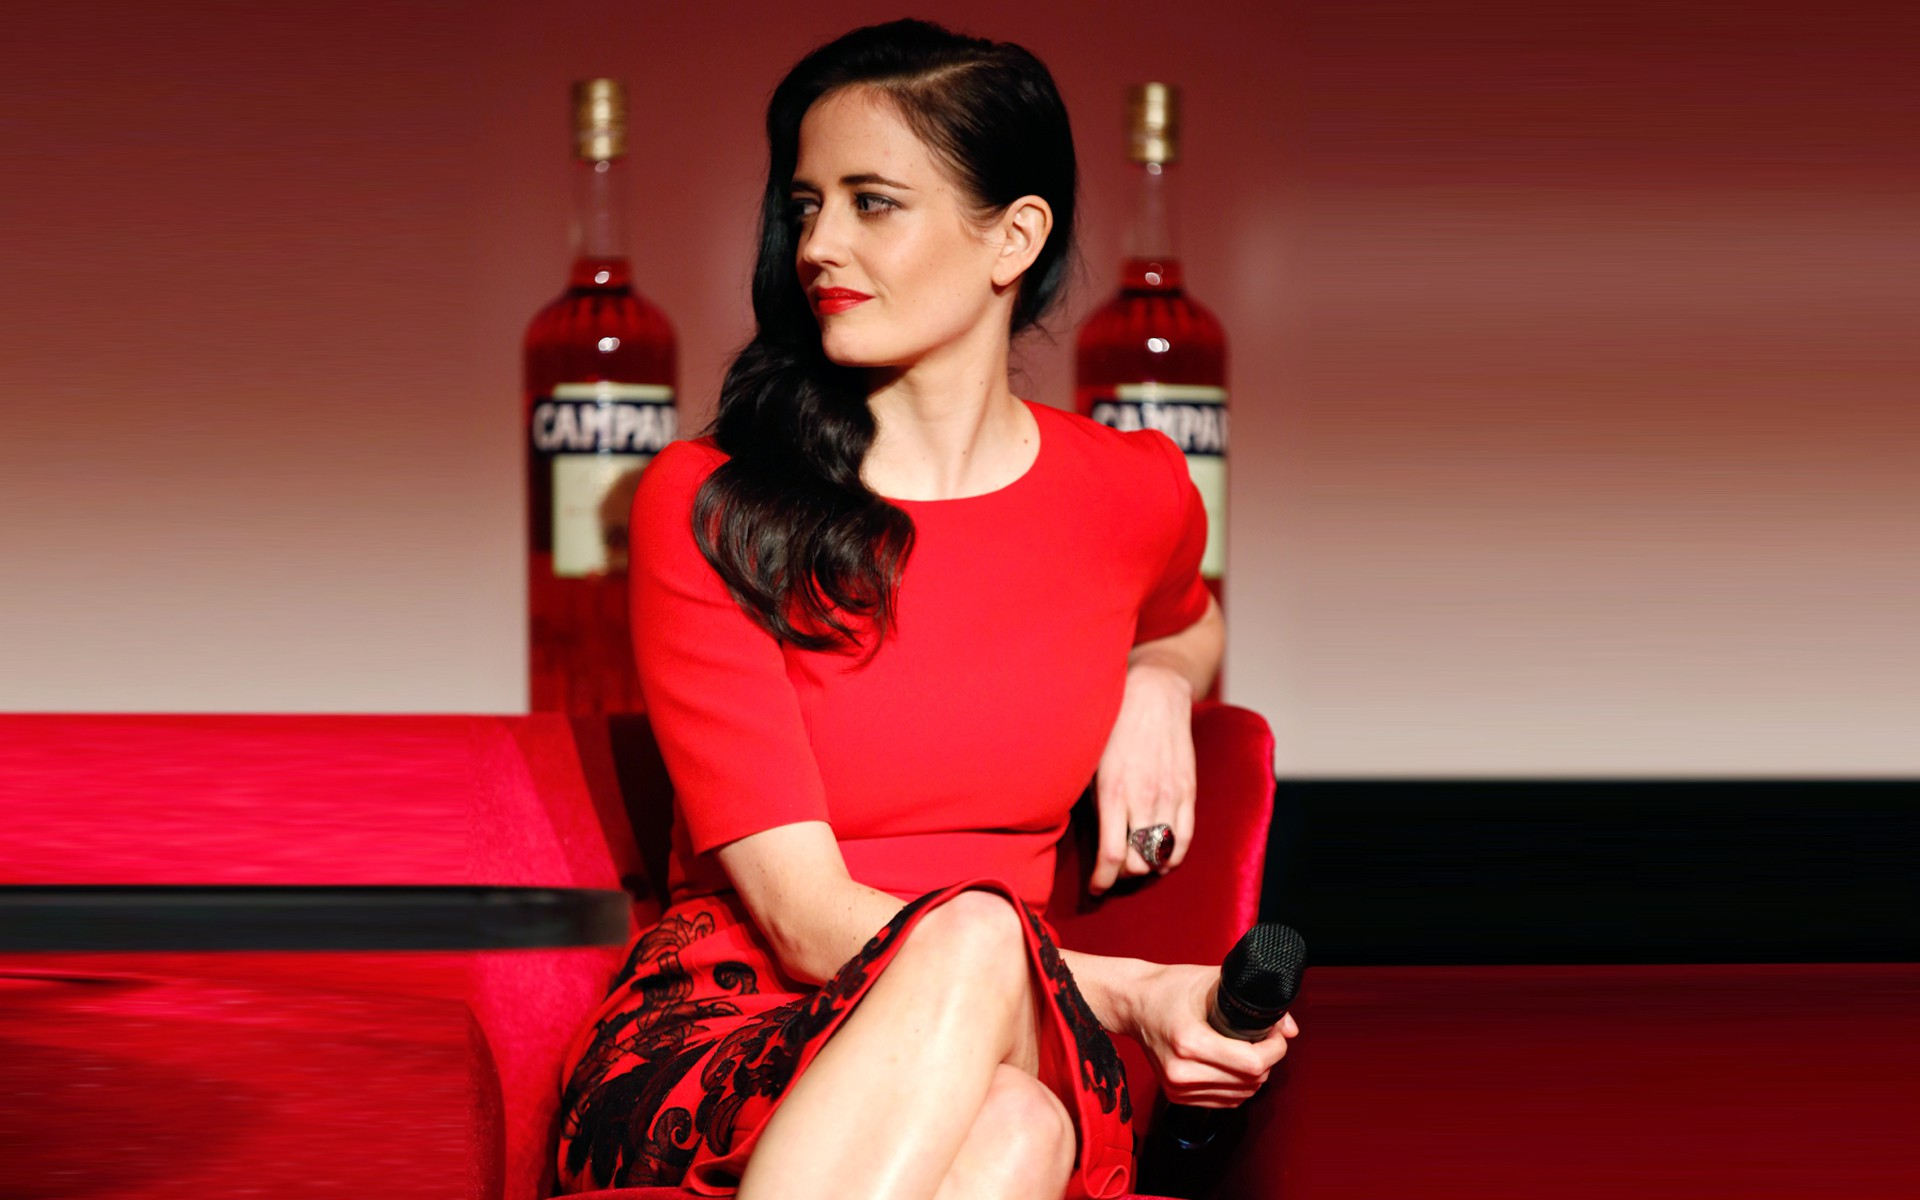 eva green celebrity hd wallpaper 54290